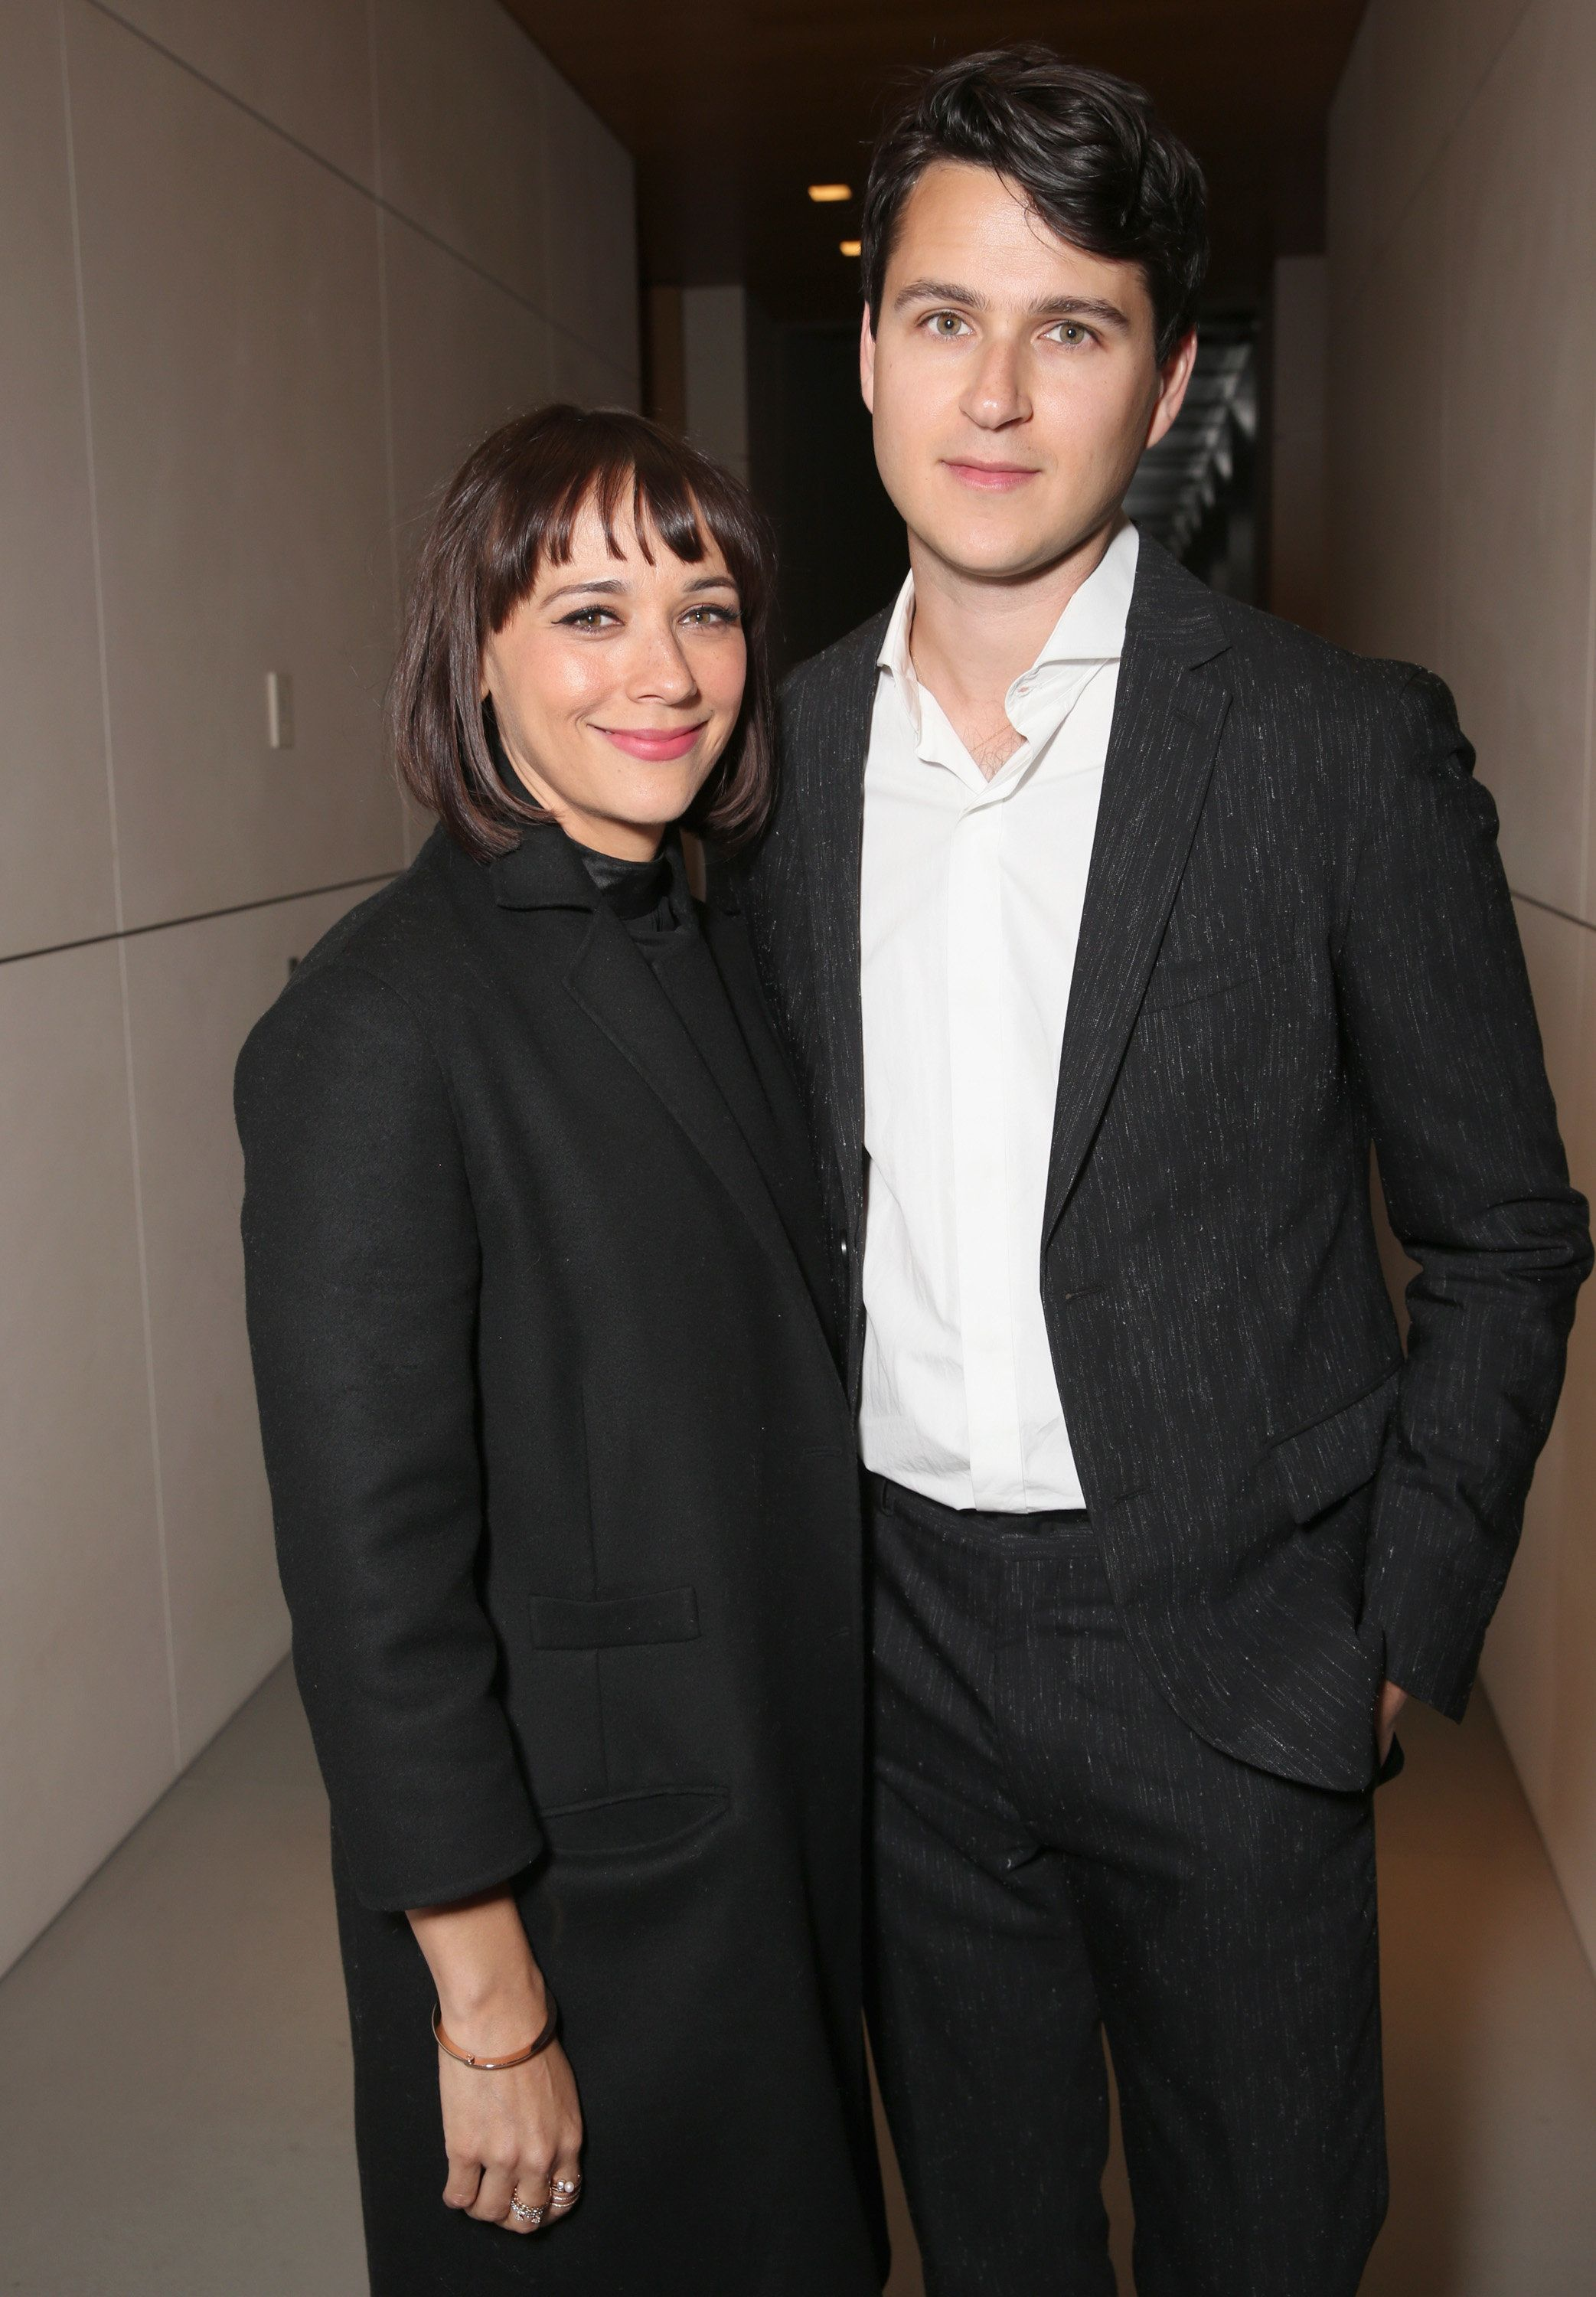 Rashida Jones and musician Ezra Koenig attend an event together in 2016.